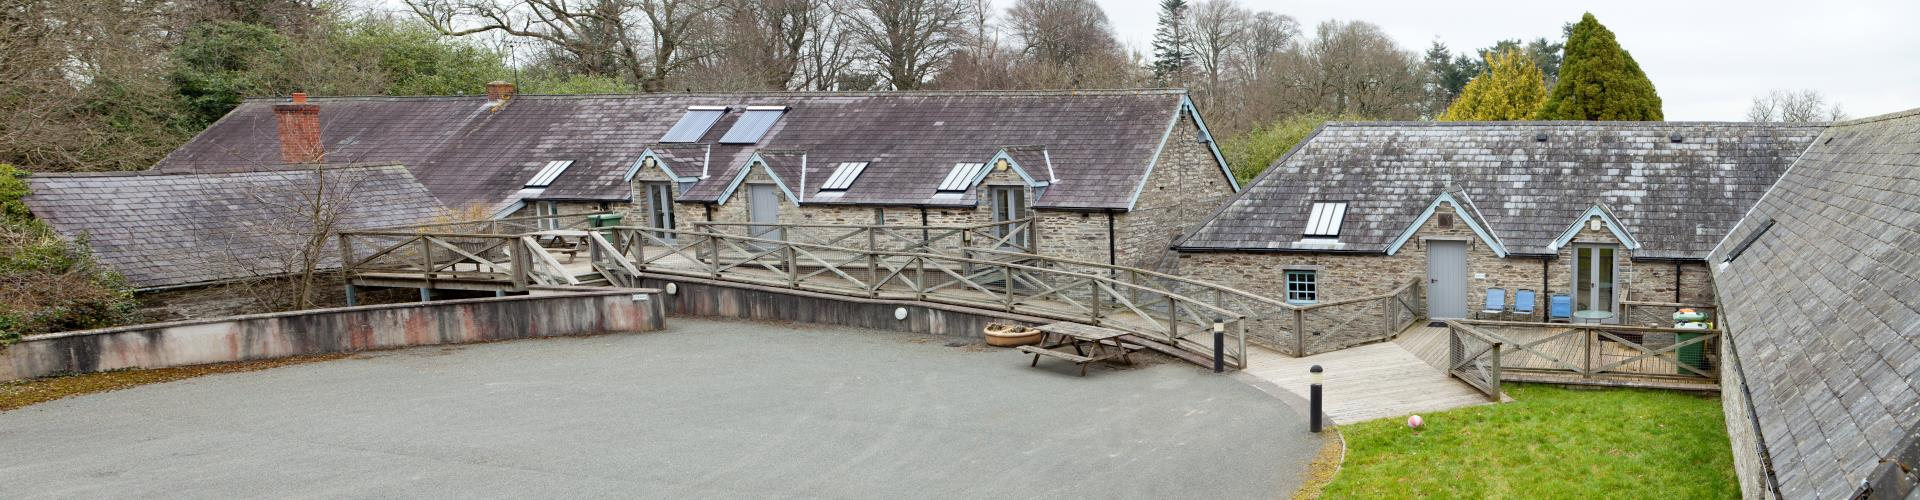 Picture of Clynfyw cottages